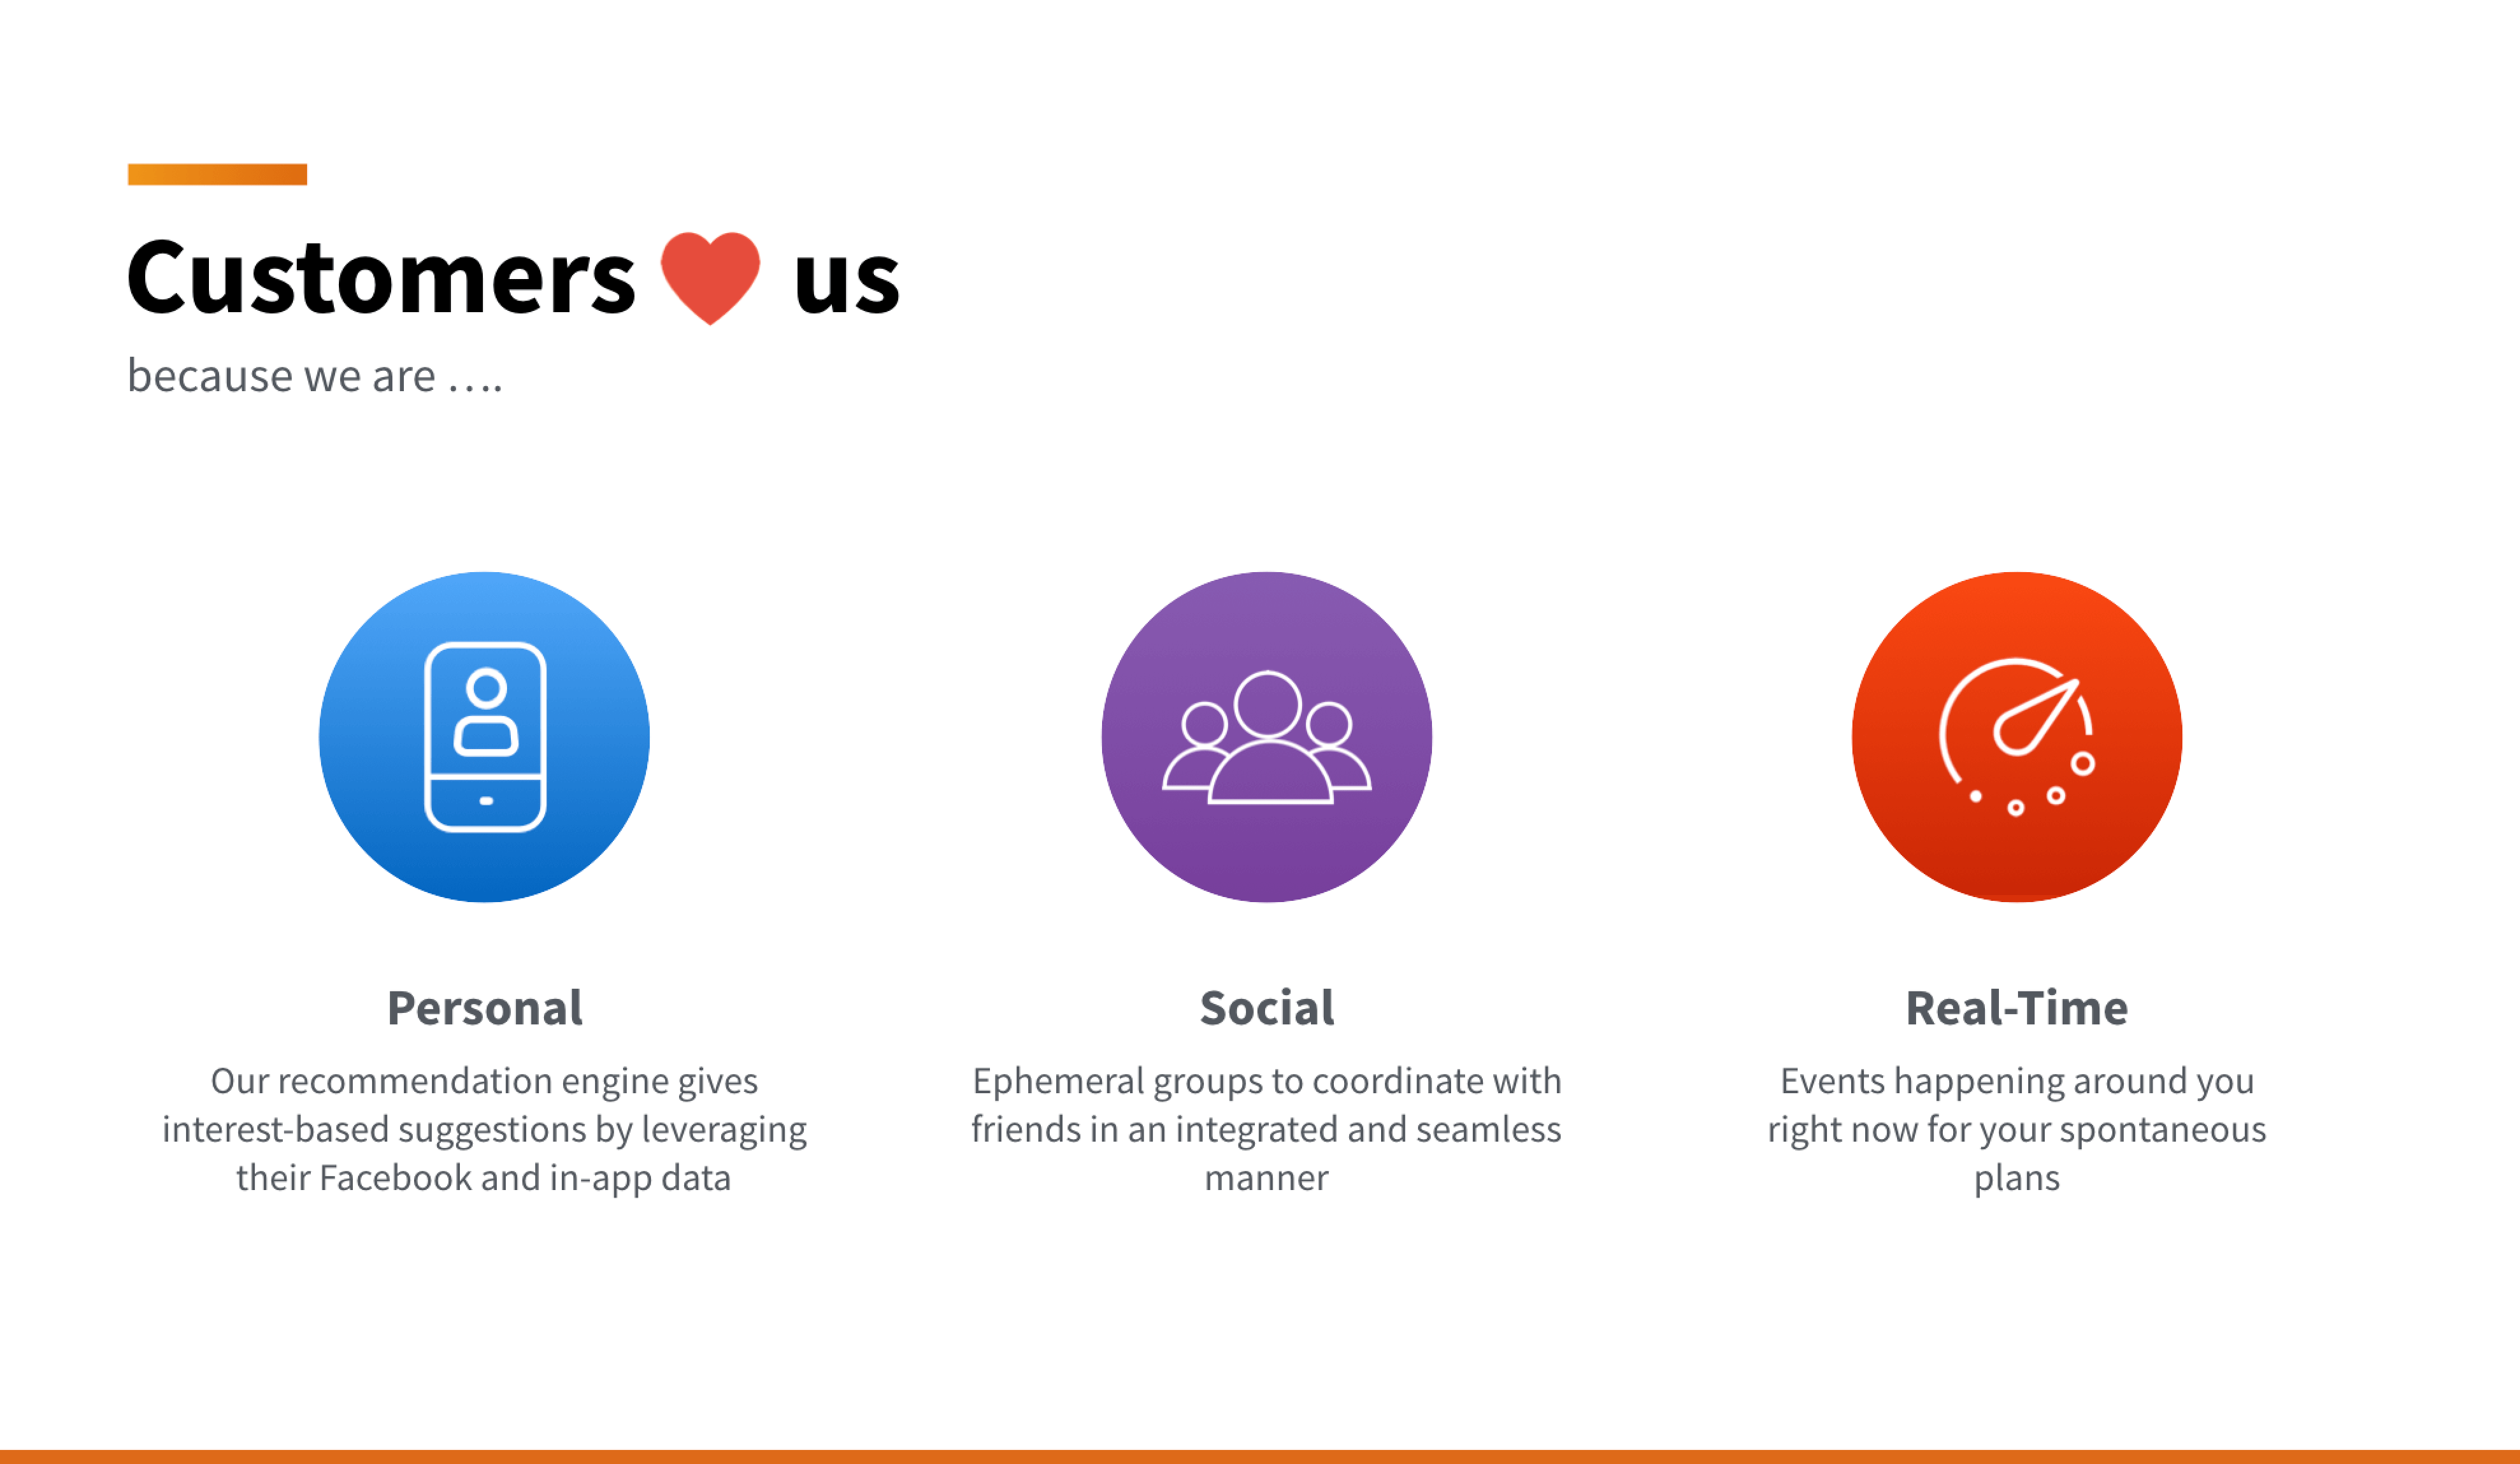 Brisky is a recommendation platform that connects people with local experts for personalized recommendations. It also provides real-time information about what is happening at pubs around you.